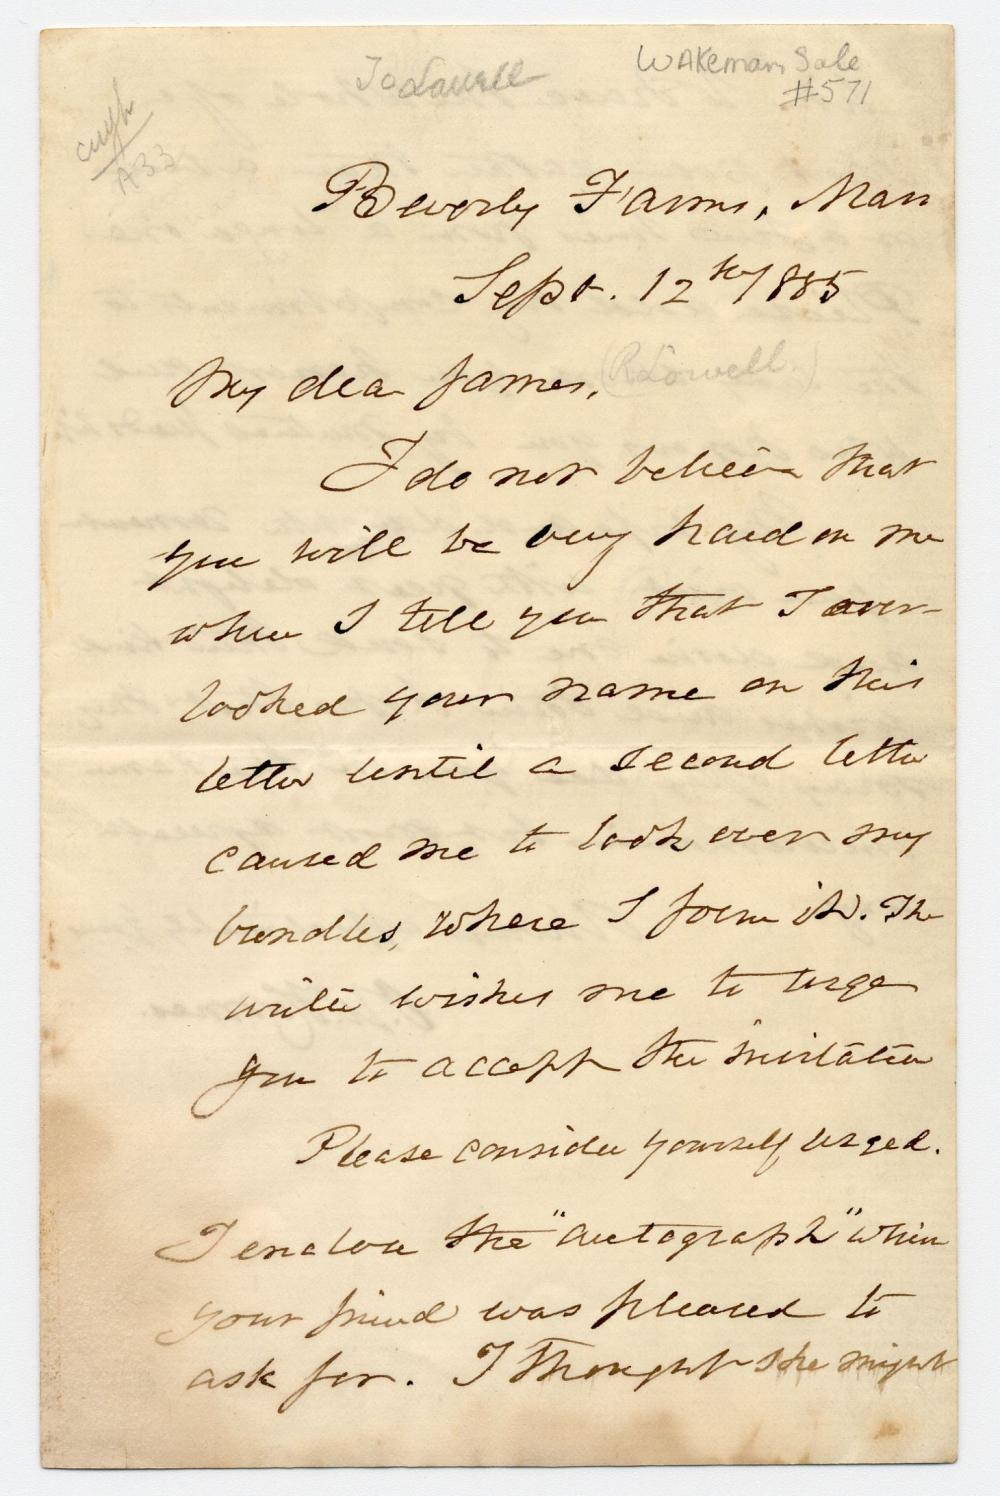 Oliver Wendell Holmes Archive Featuring 11 Items With 11 Signatures, from Over a Nearly 40-Year Period